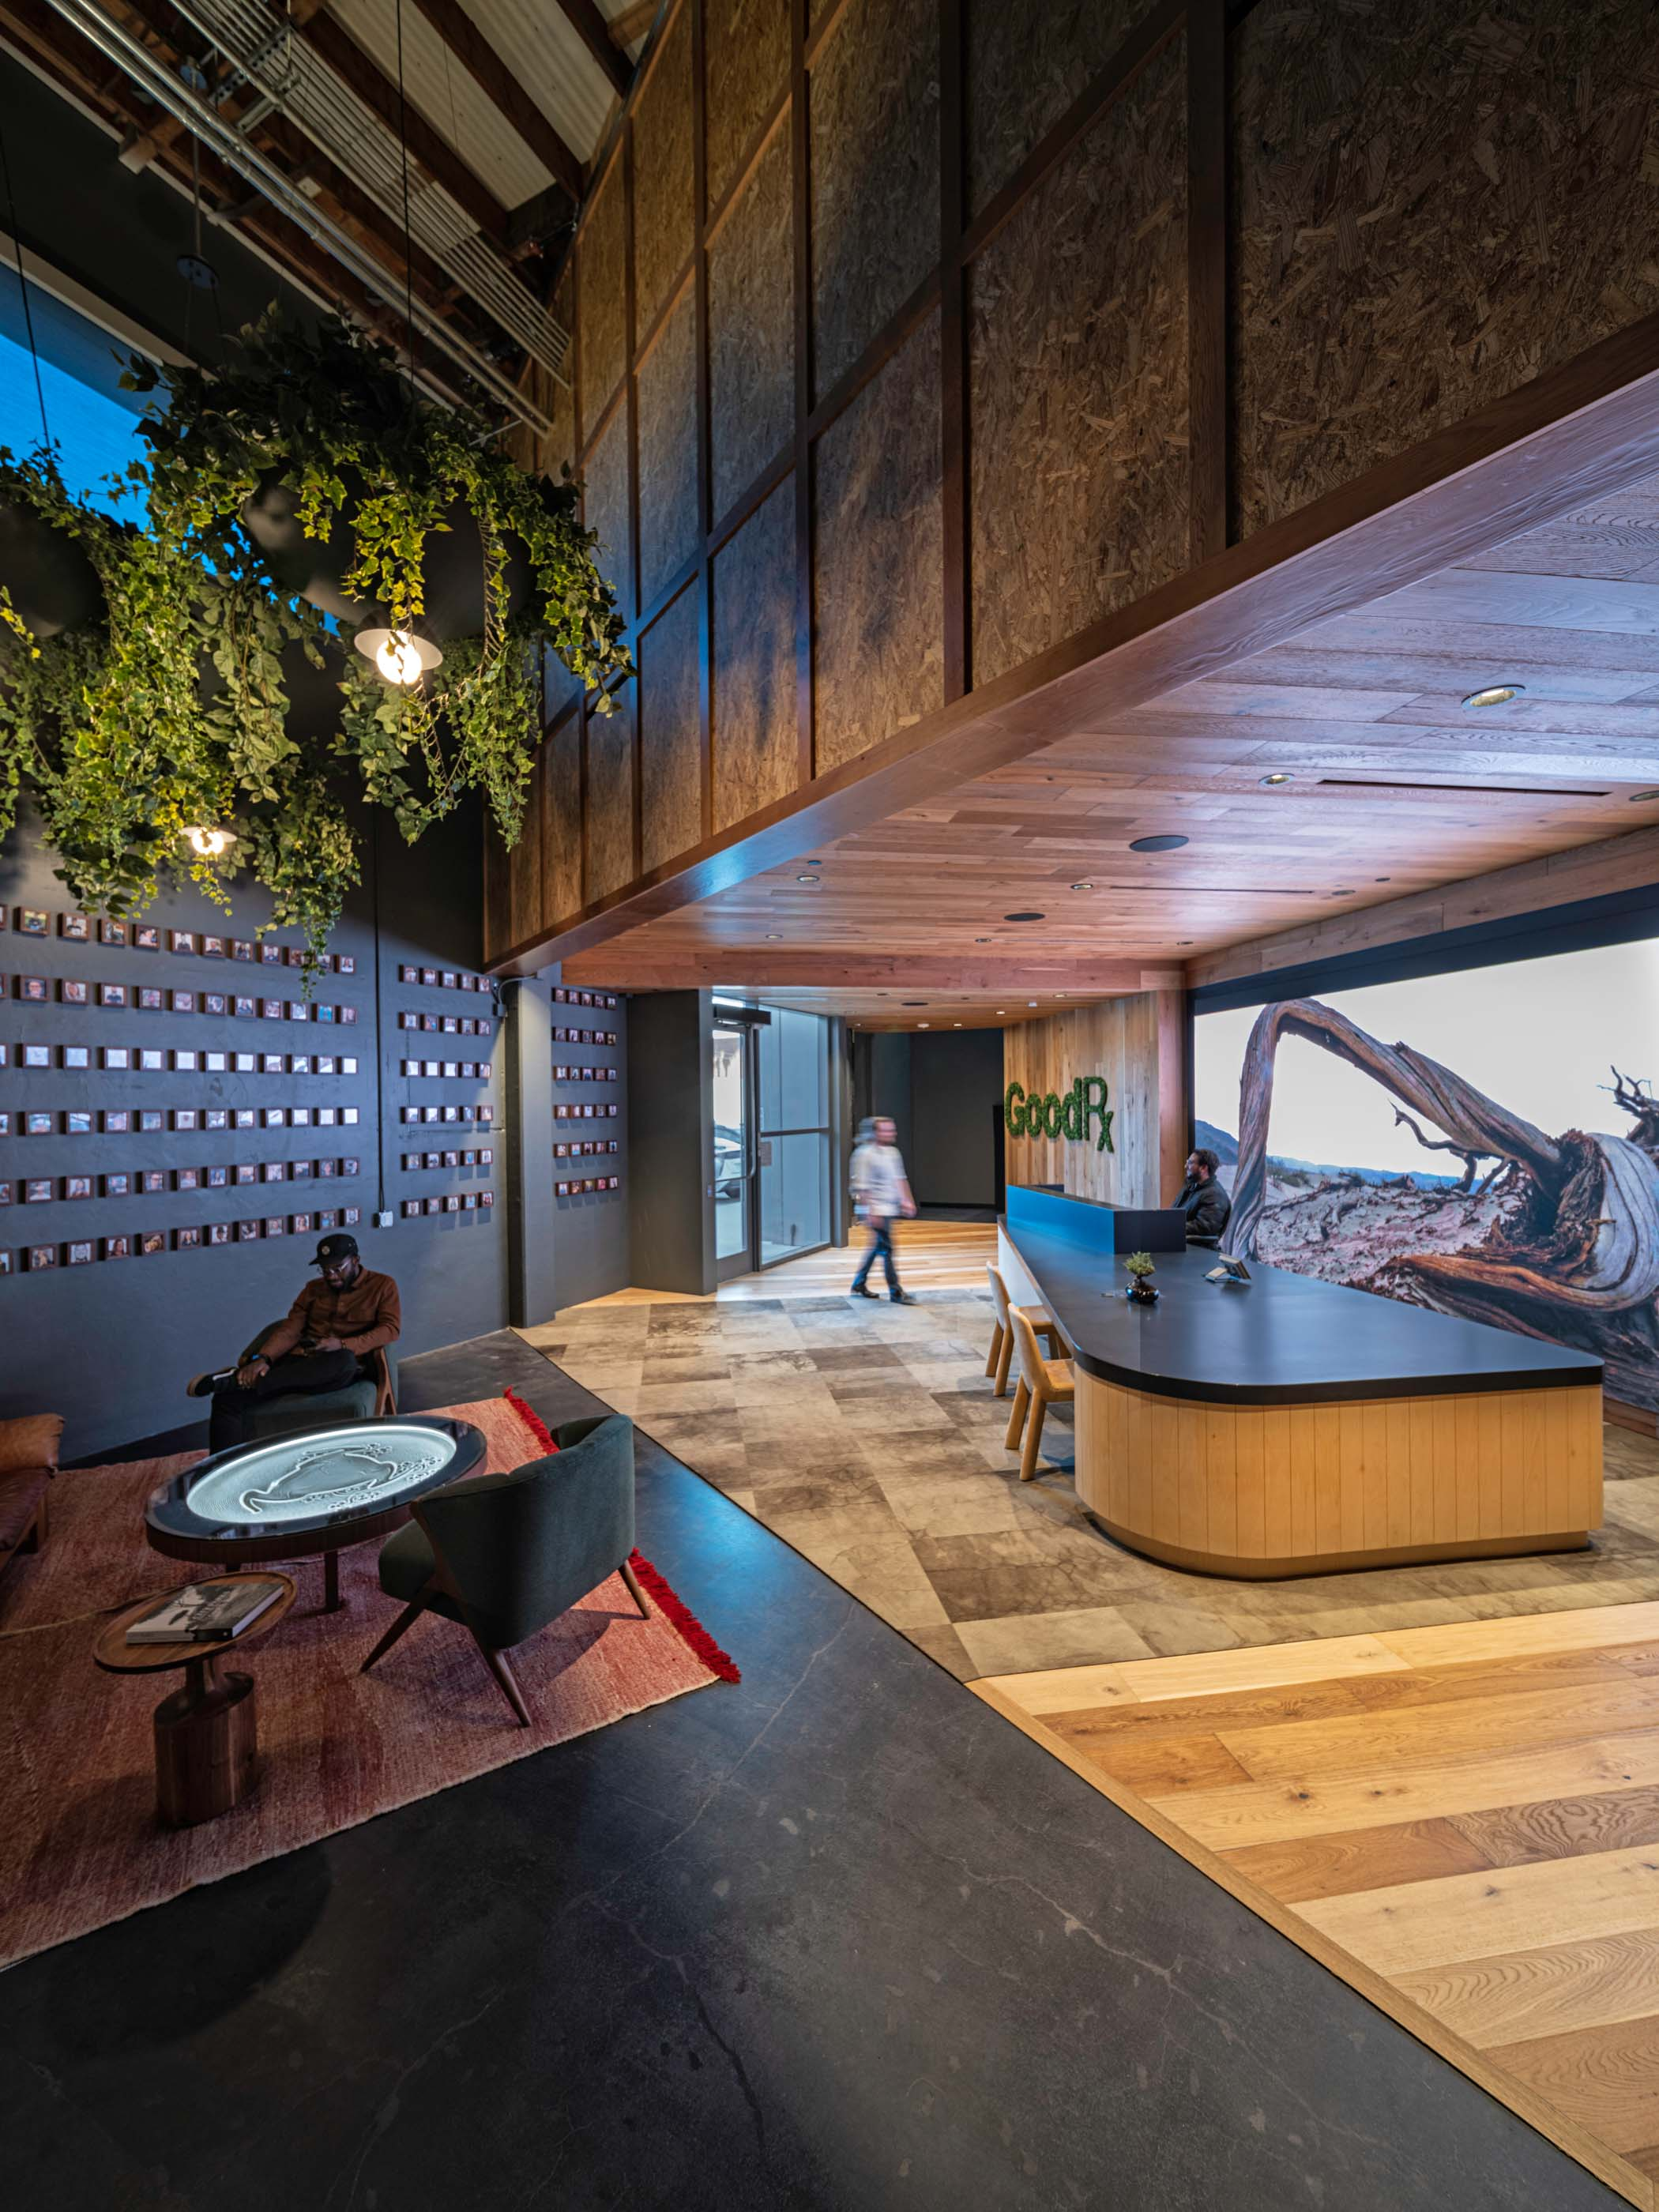 Good Rx lobby entrance with a front desk, a table, and wood finishes